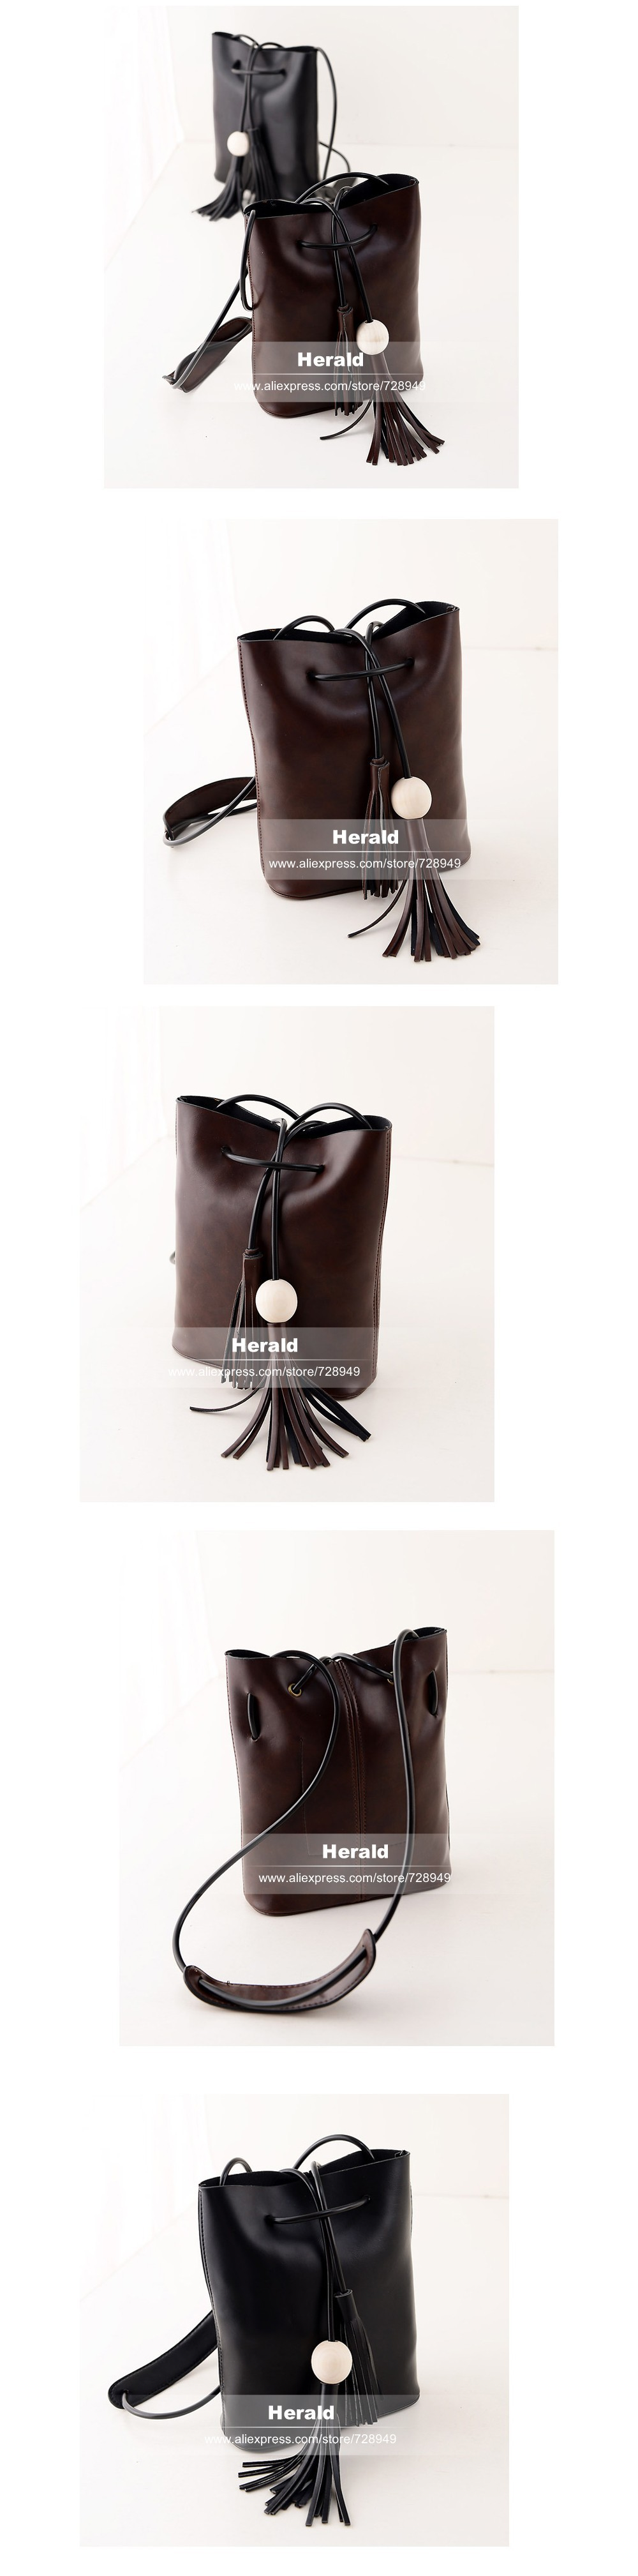 Vintage Tassel Fringe White Ball Bucket Bag For Women Female Messenger Bag Shoulder Bag String Casual Quality Leather New 2014 2